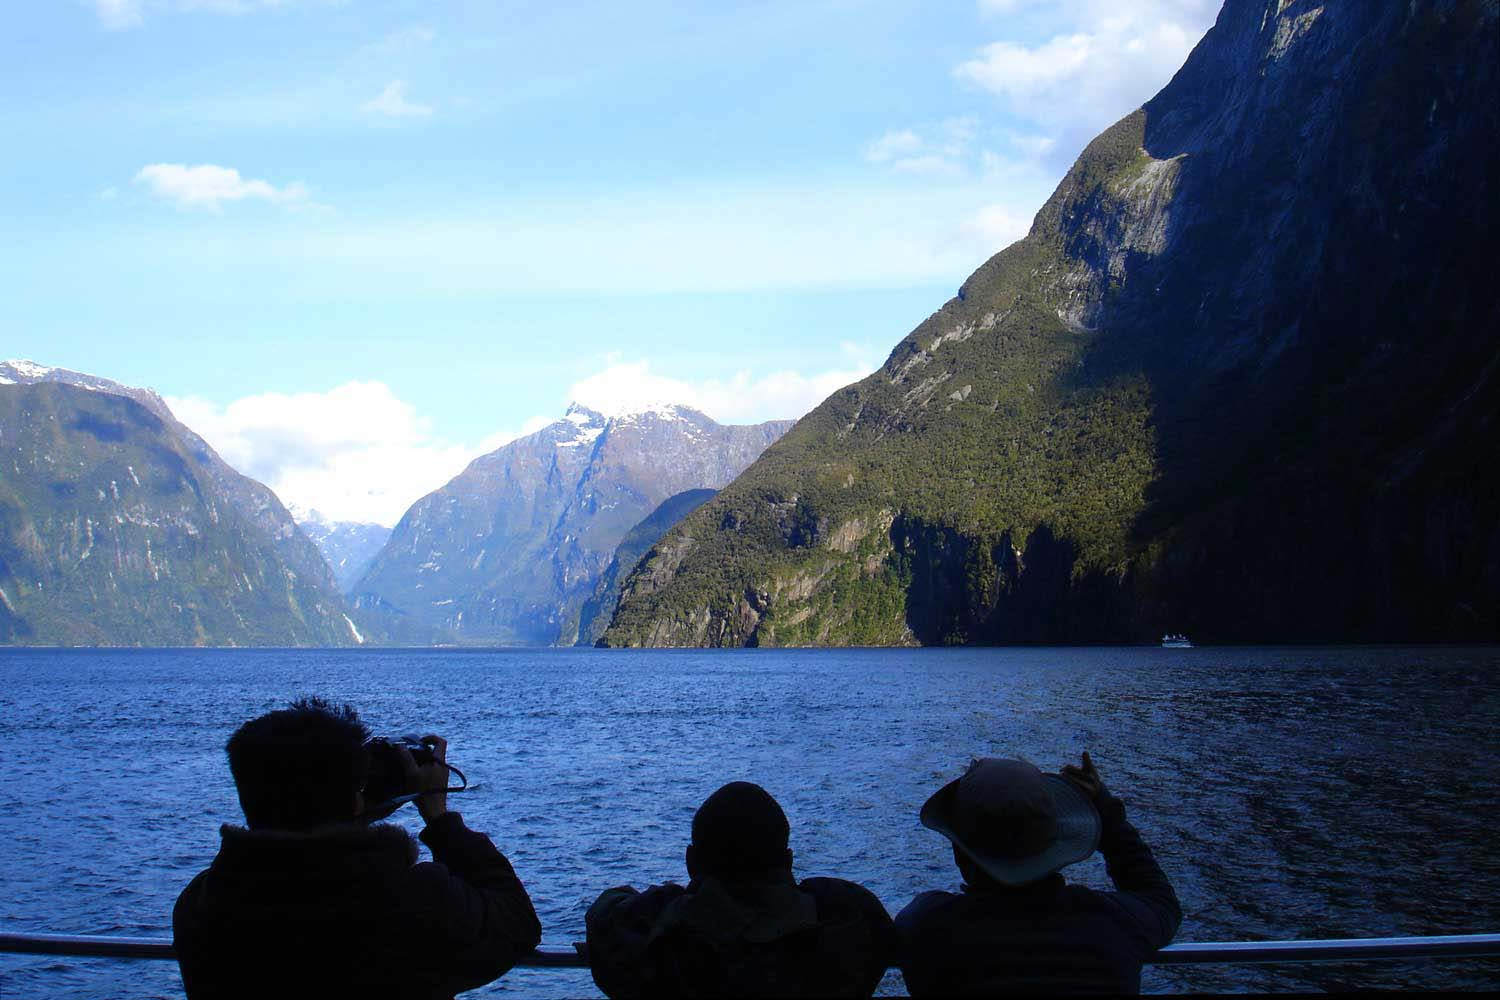 Queenstown to milford sound - view of milford sound